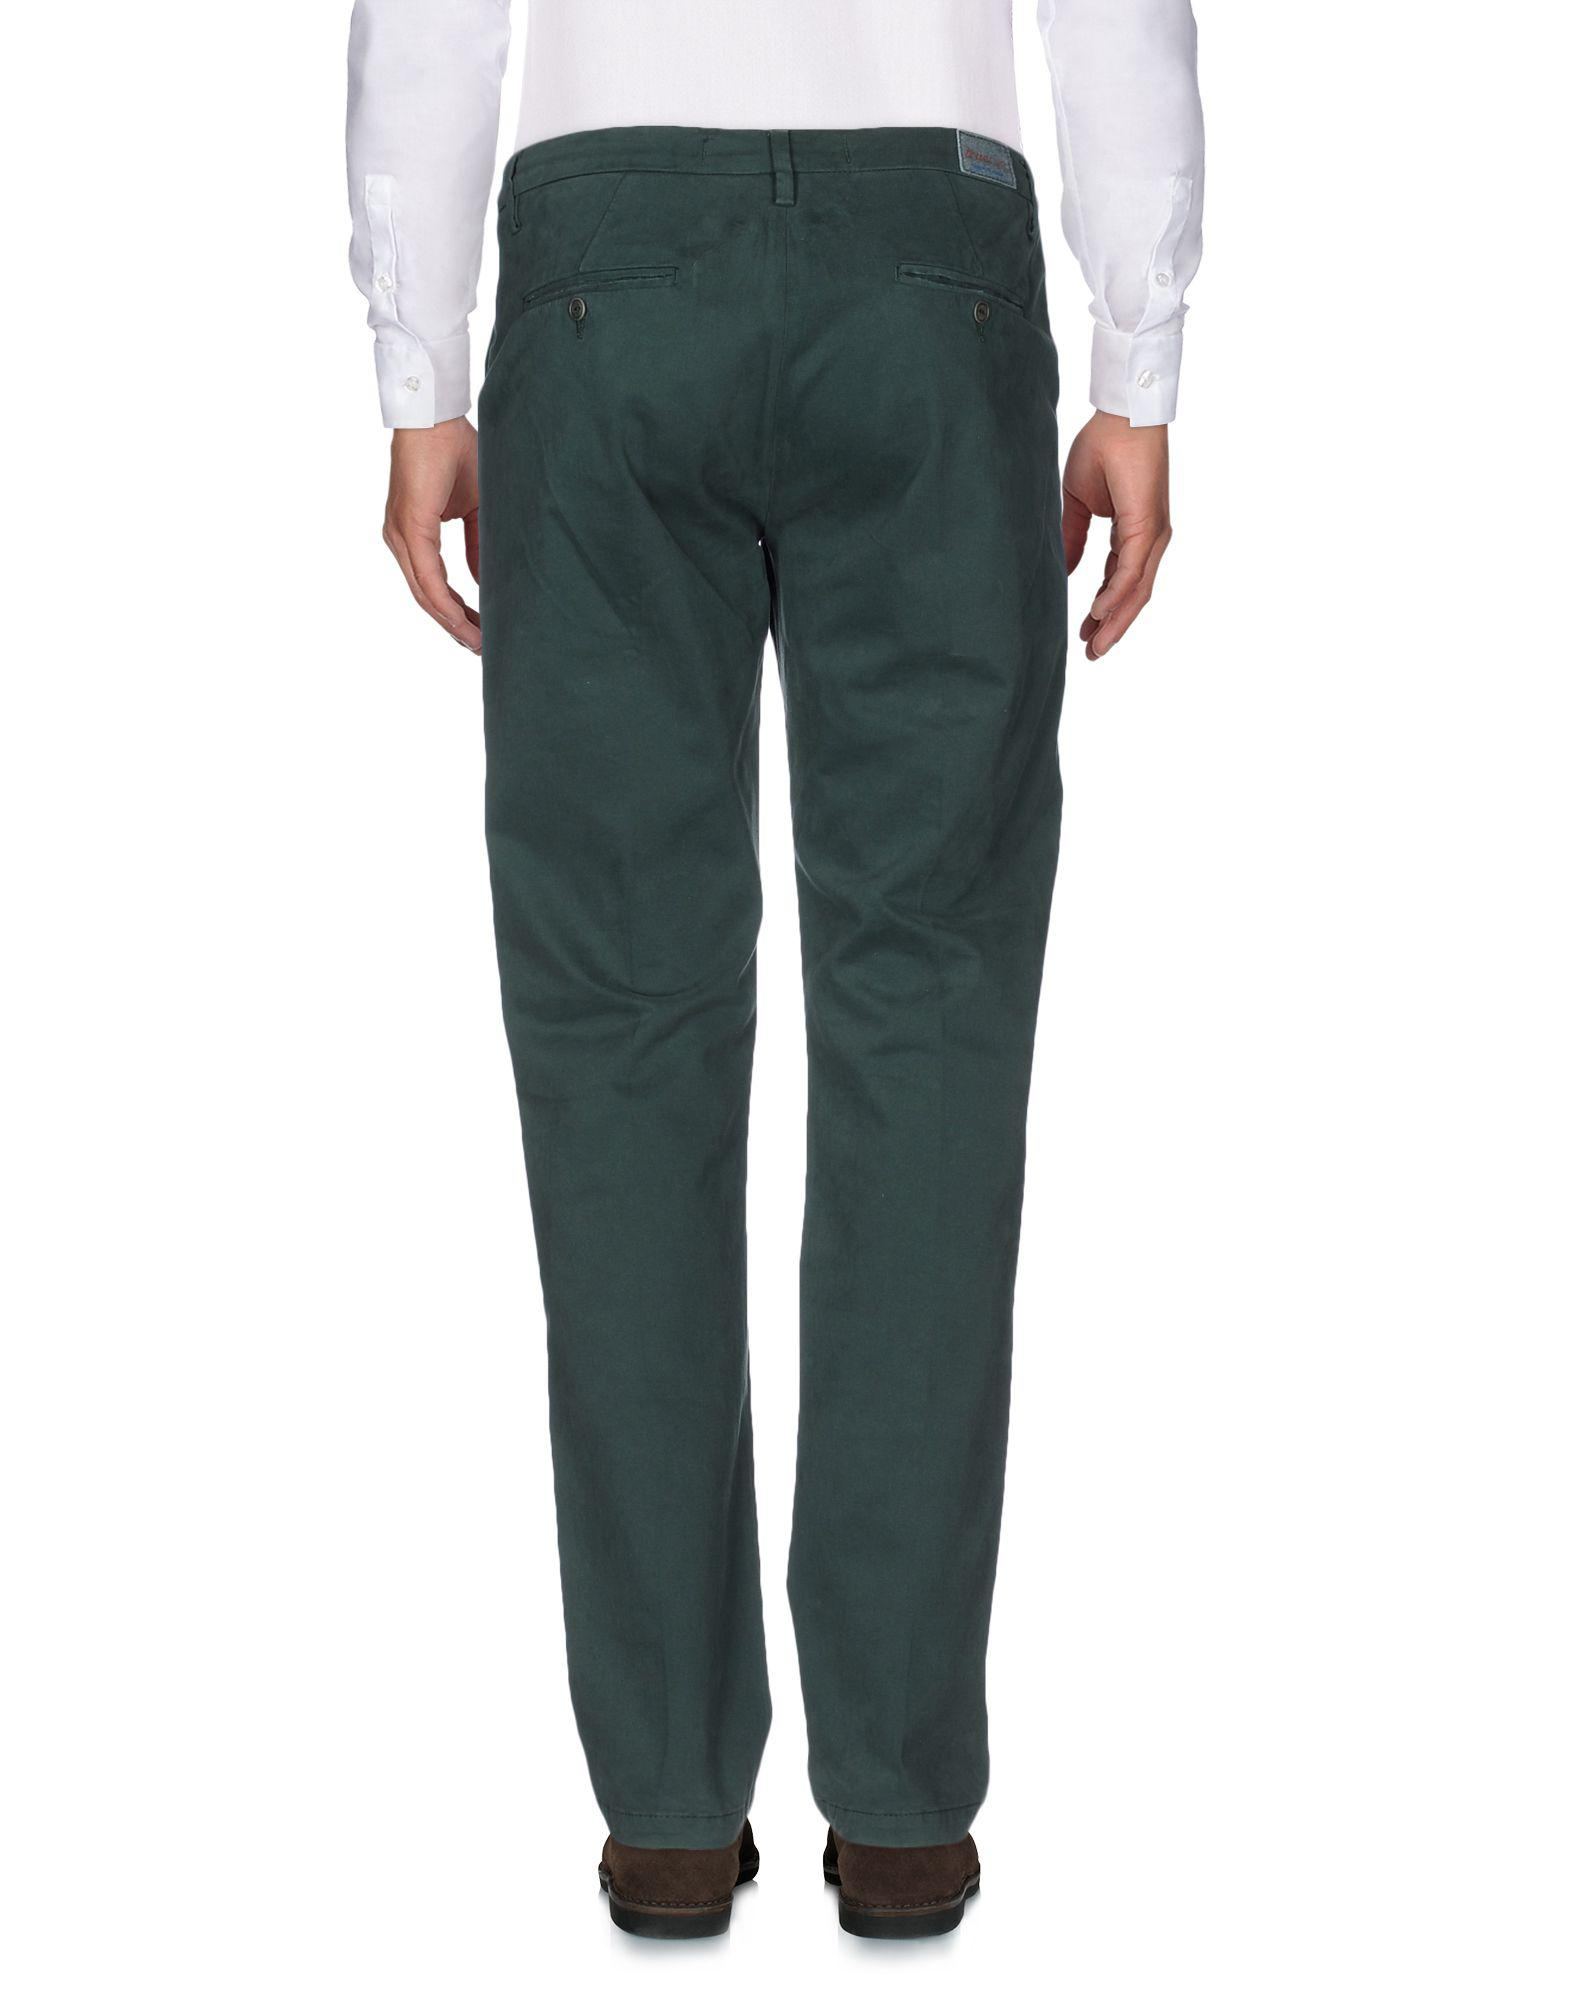 TRUE NYC Cotton Casual Trouser in Green for Men